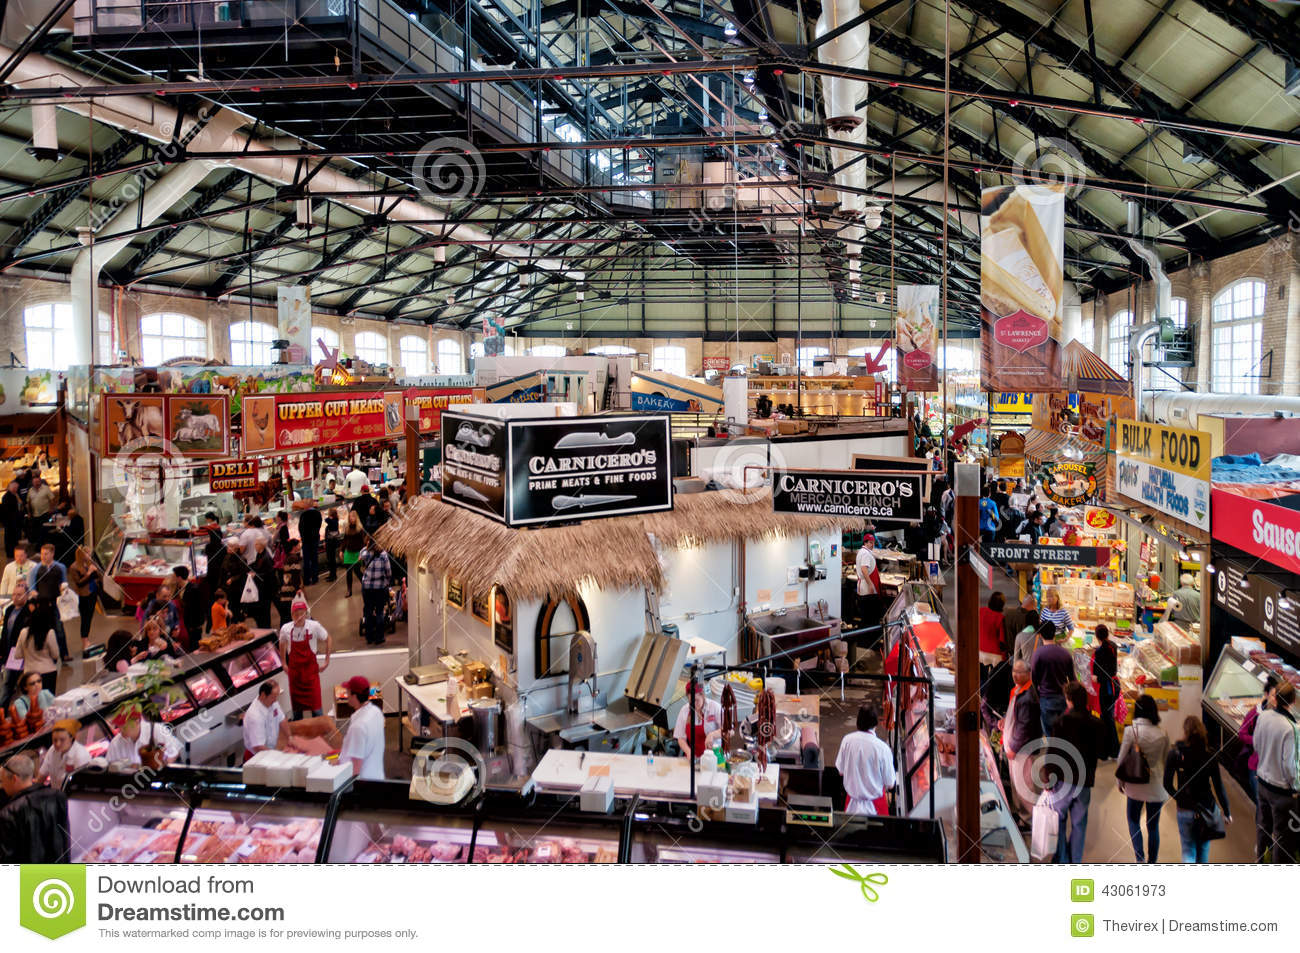 Cost U Less >> St. Lawrence Market In Toronto Editorial Stock Photo - Image: 43061973